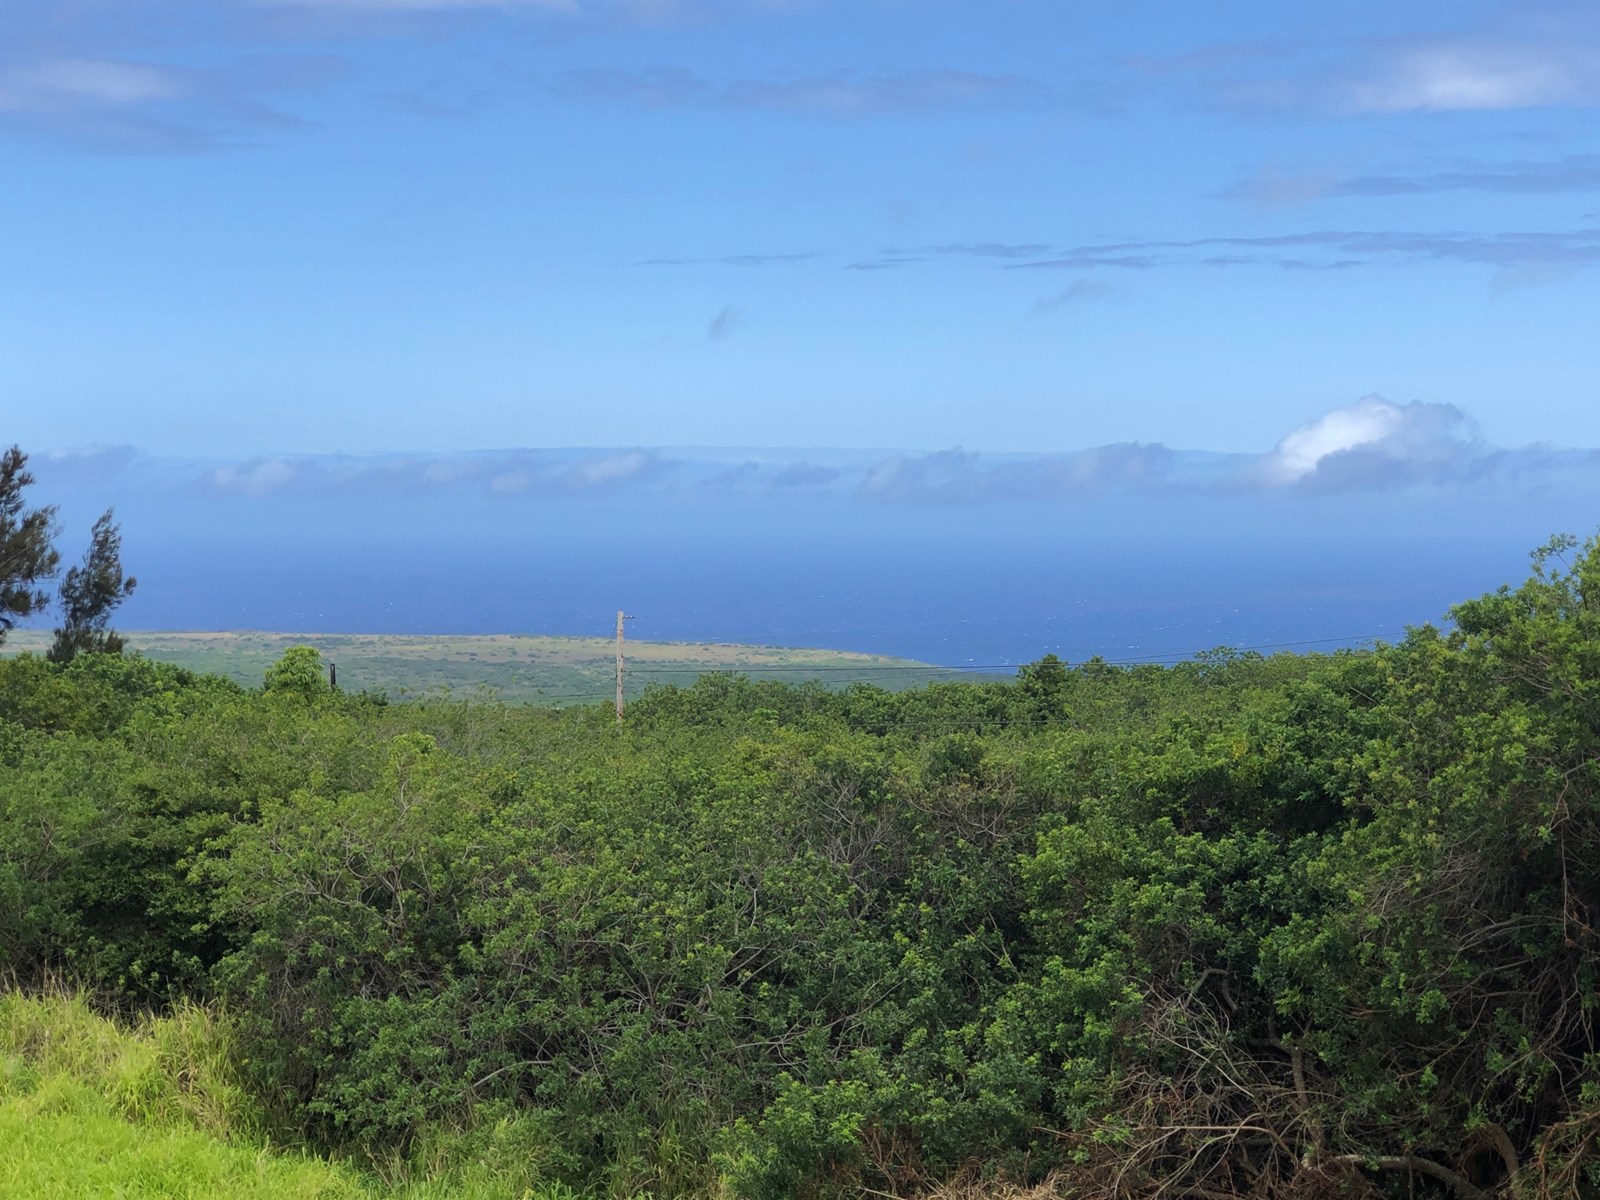 Hawaii Big island lot for sale w/ocean view and permits